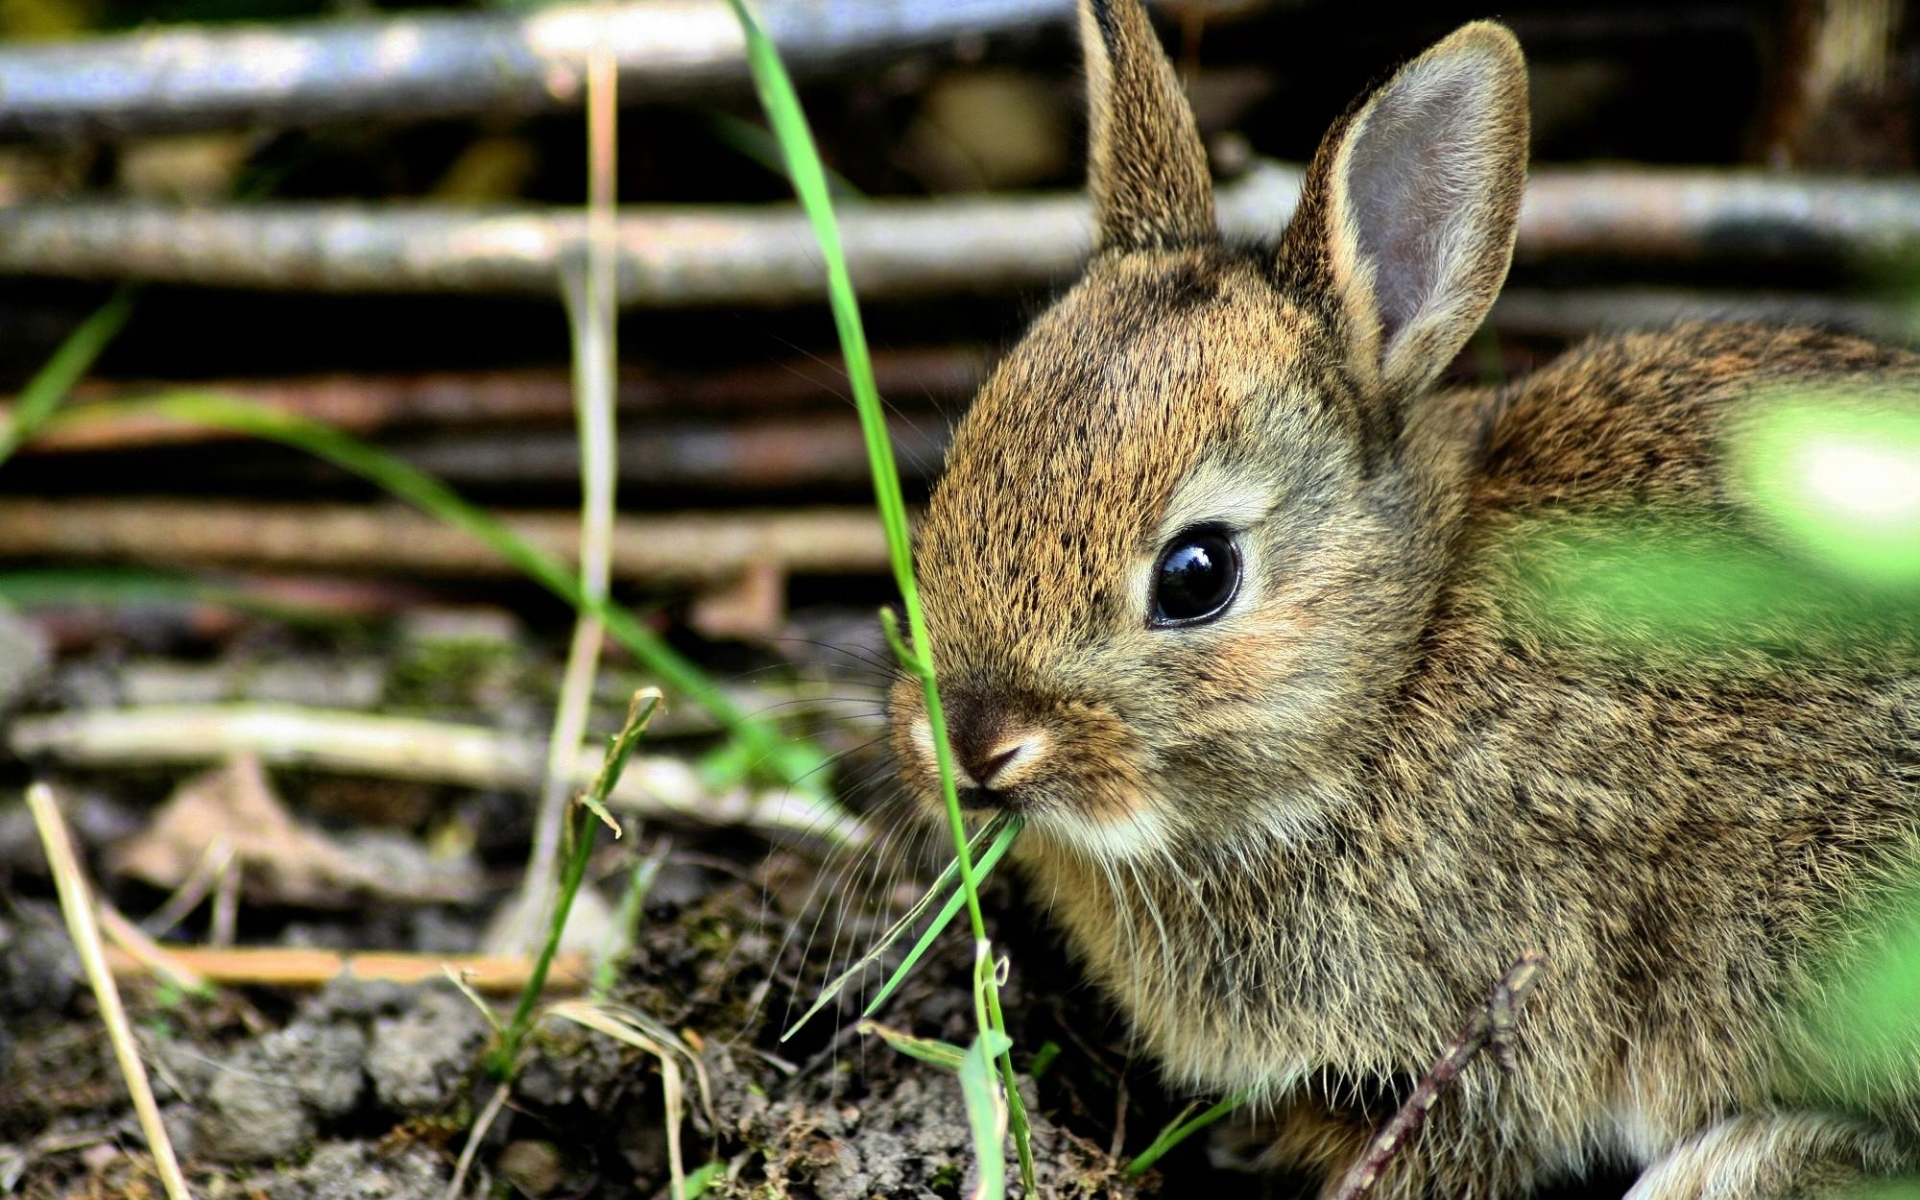 31152 download wallpaper Animals, Rabbits screensavers and pictures for free